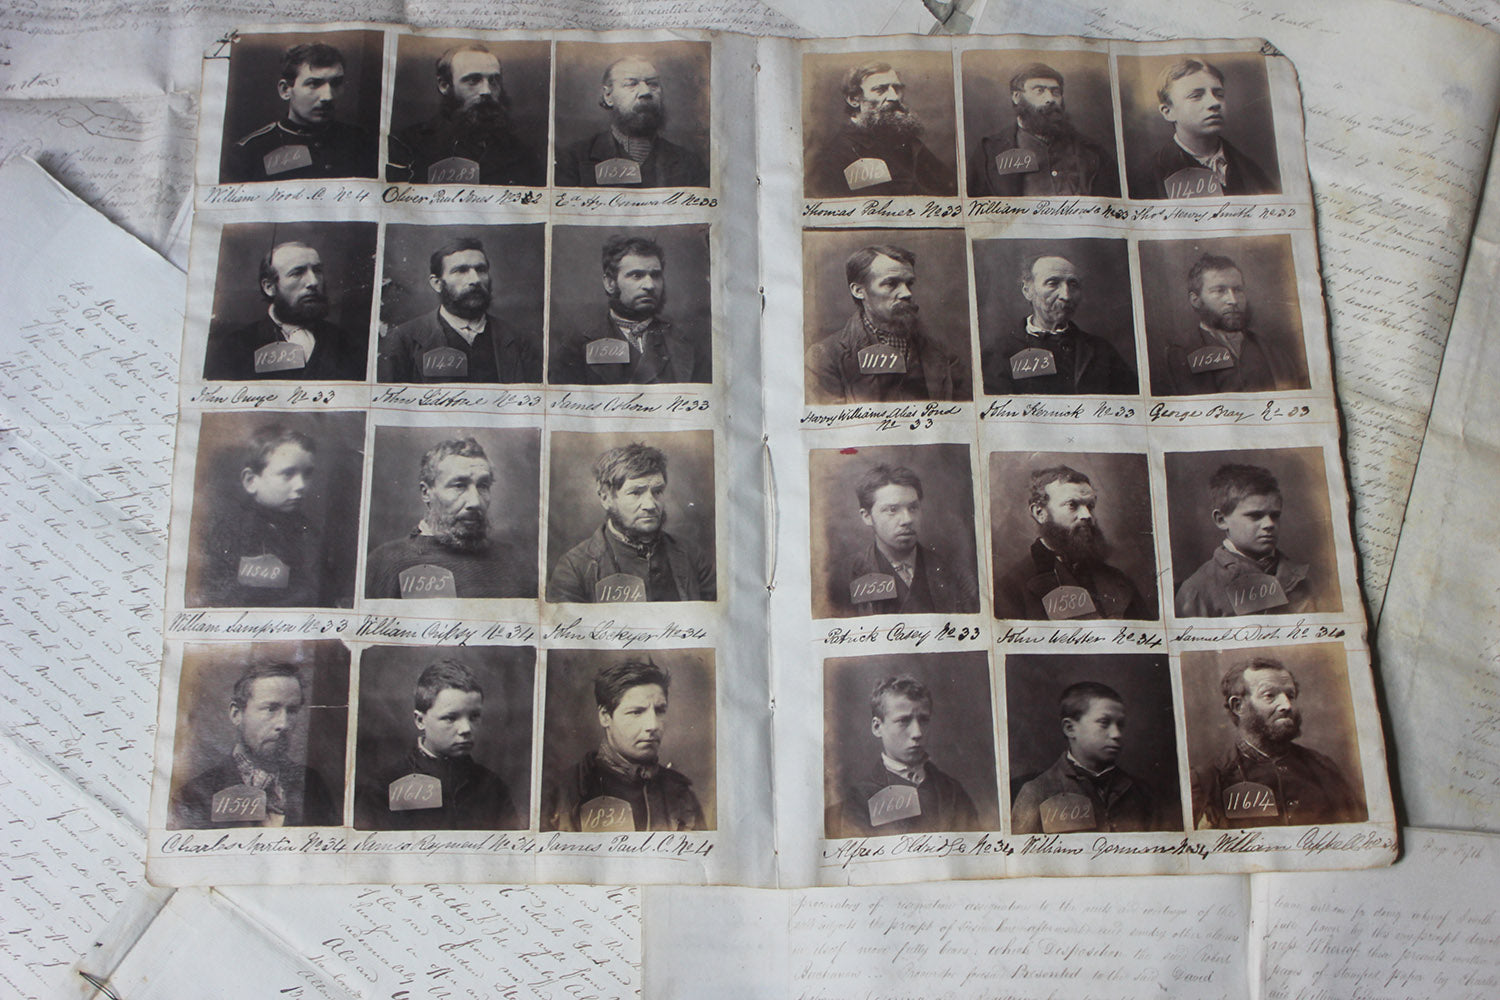 A Very Rare Mid-19thC Ledger Page of Convict Mugshot Photographs from Exeter Gaol c.1855-65